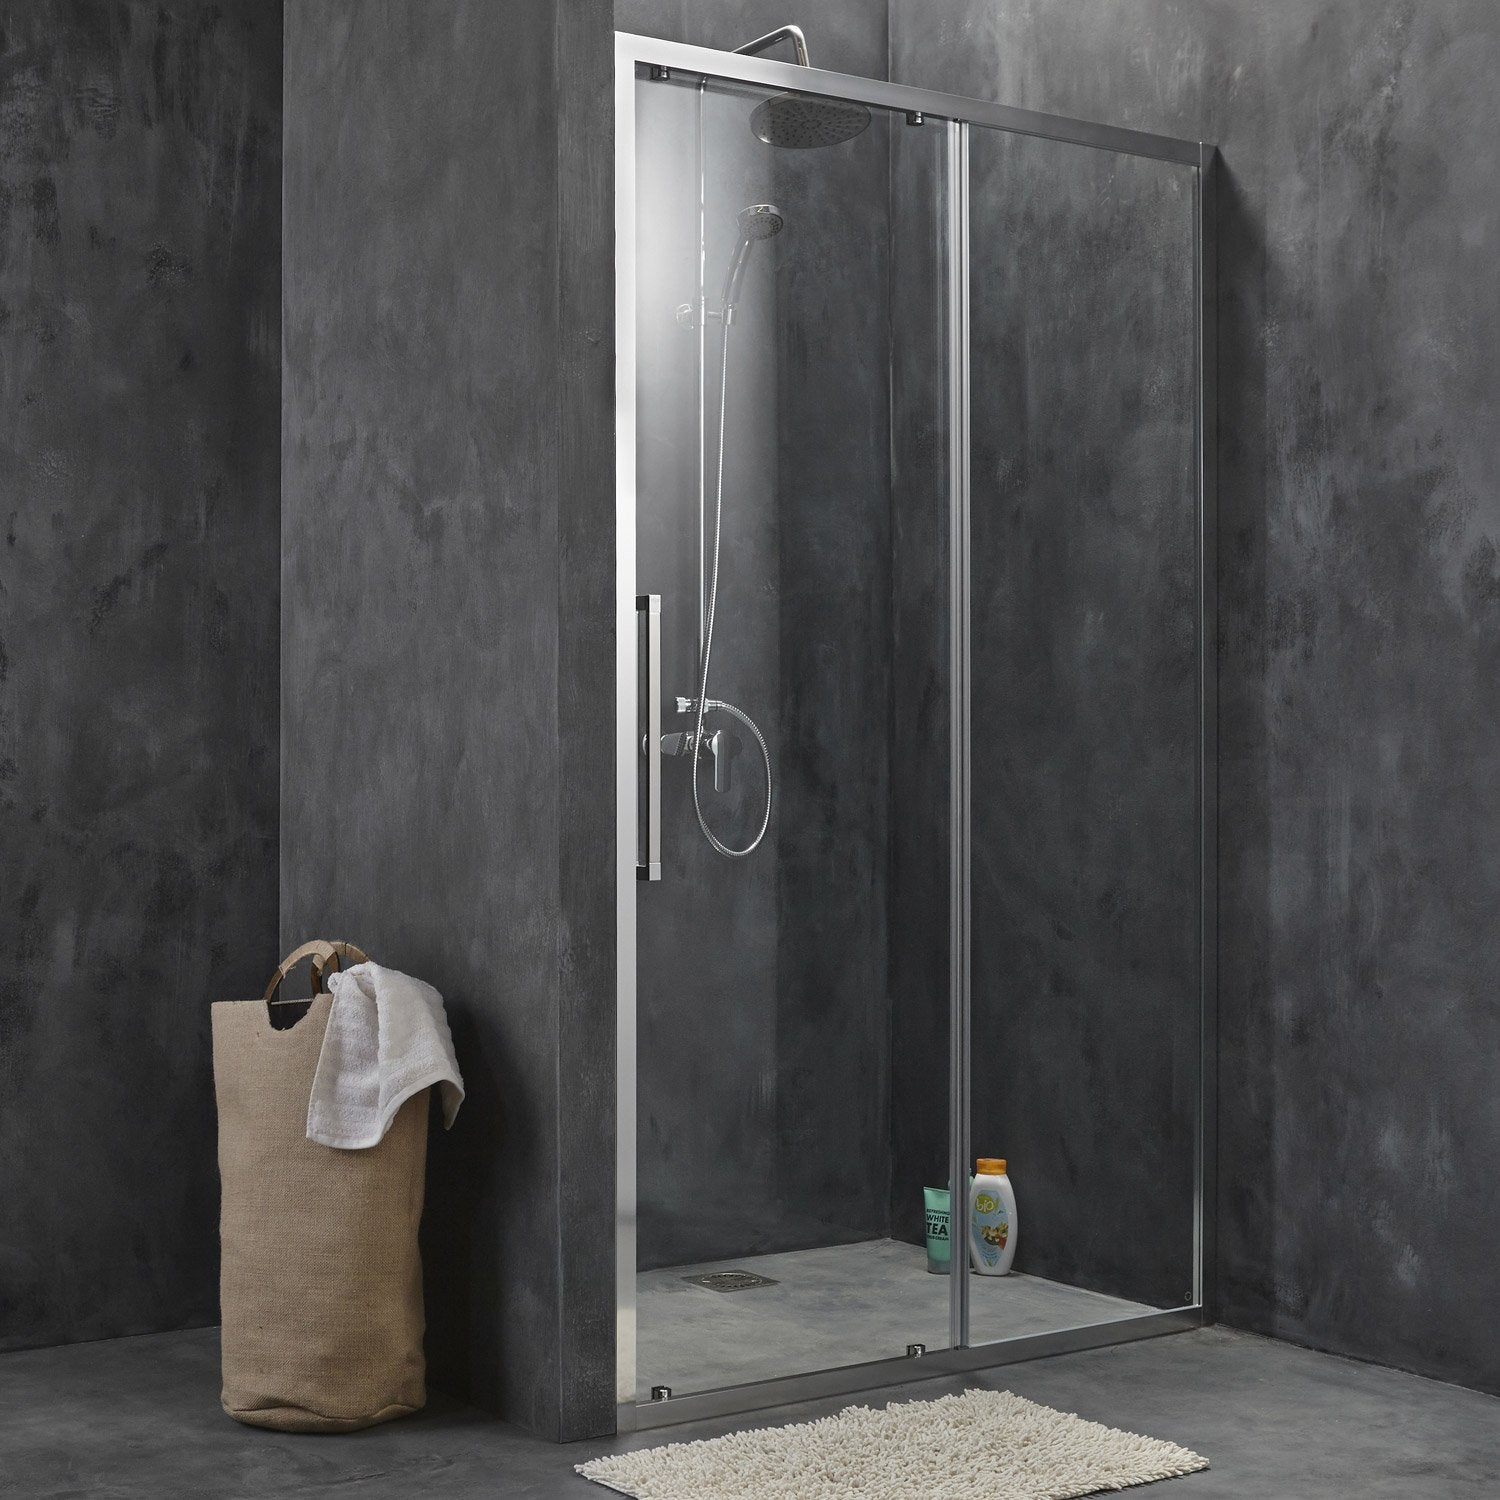 Porte de douche coulissante sensea purity 3 verre for Porte coulissante salon 140 cm